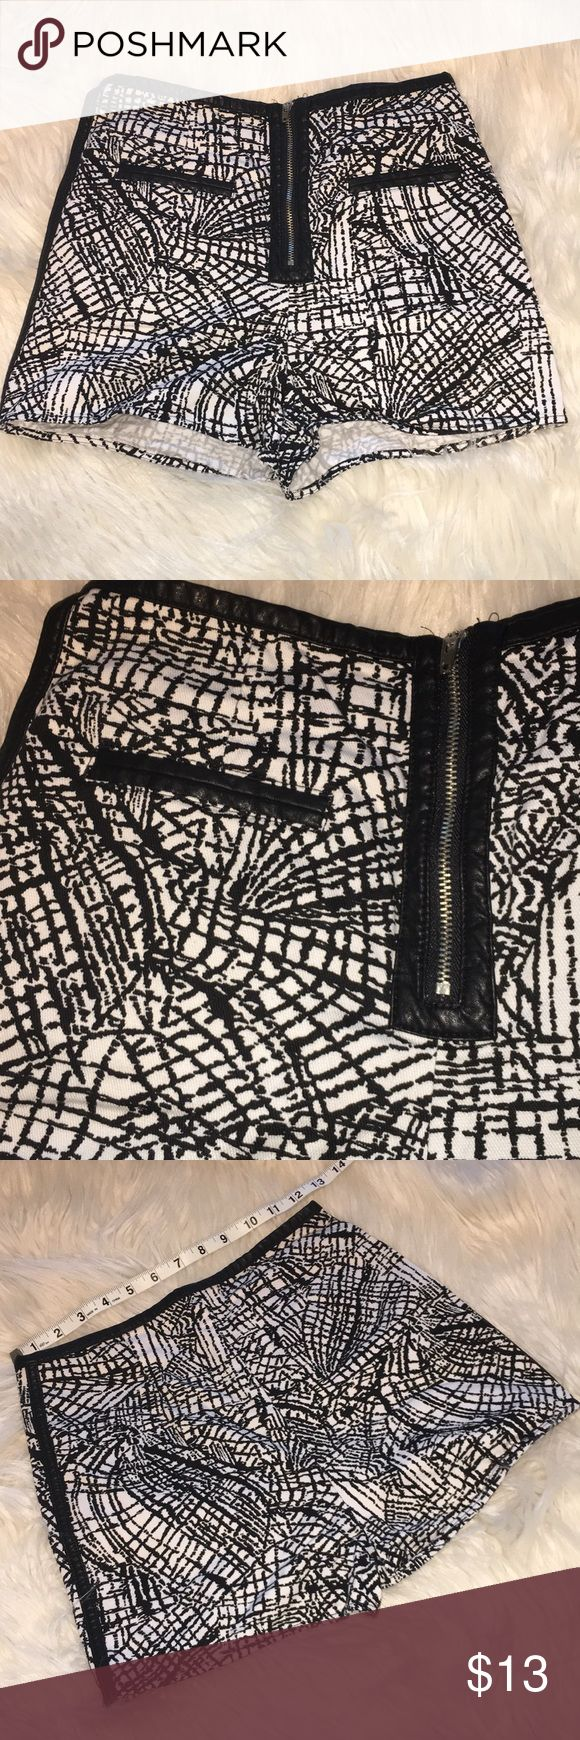 Black and White Geo Design Shorts - 2 Great Short Shorts! Looks Great w/a Black Leotard to Show Off Leatherette Piping and Faux Pockets.  Zipper Closure on Front.  Brand is Silence + Noise, Bought @ Urban Outfitters Urban Outfitters Shorts